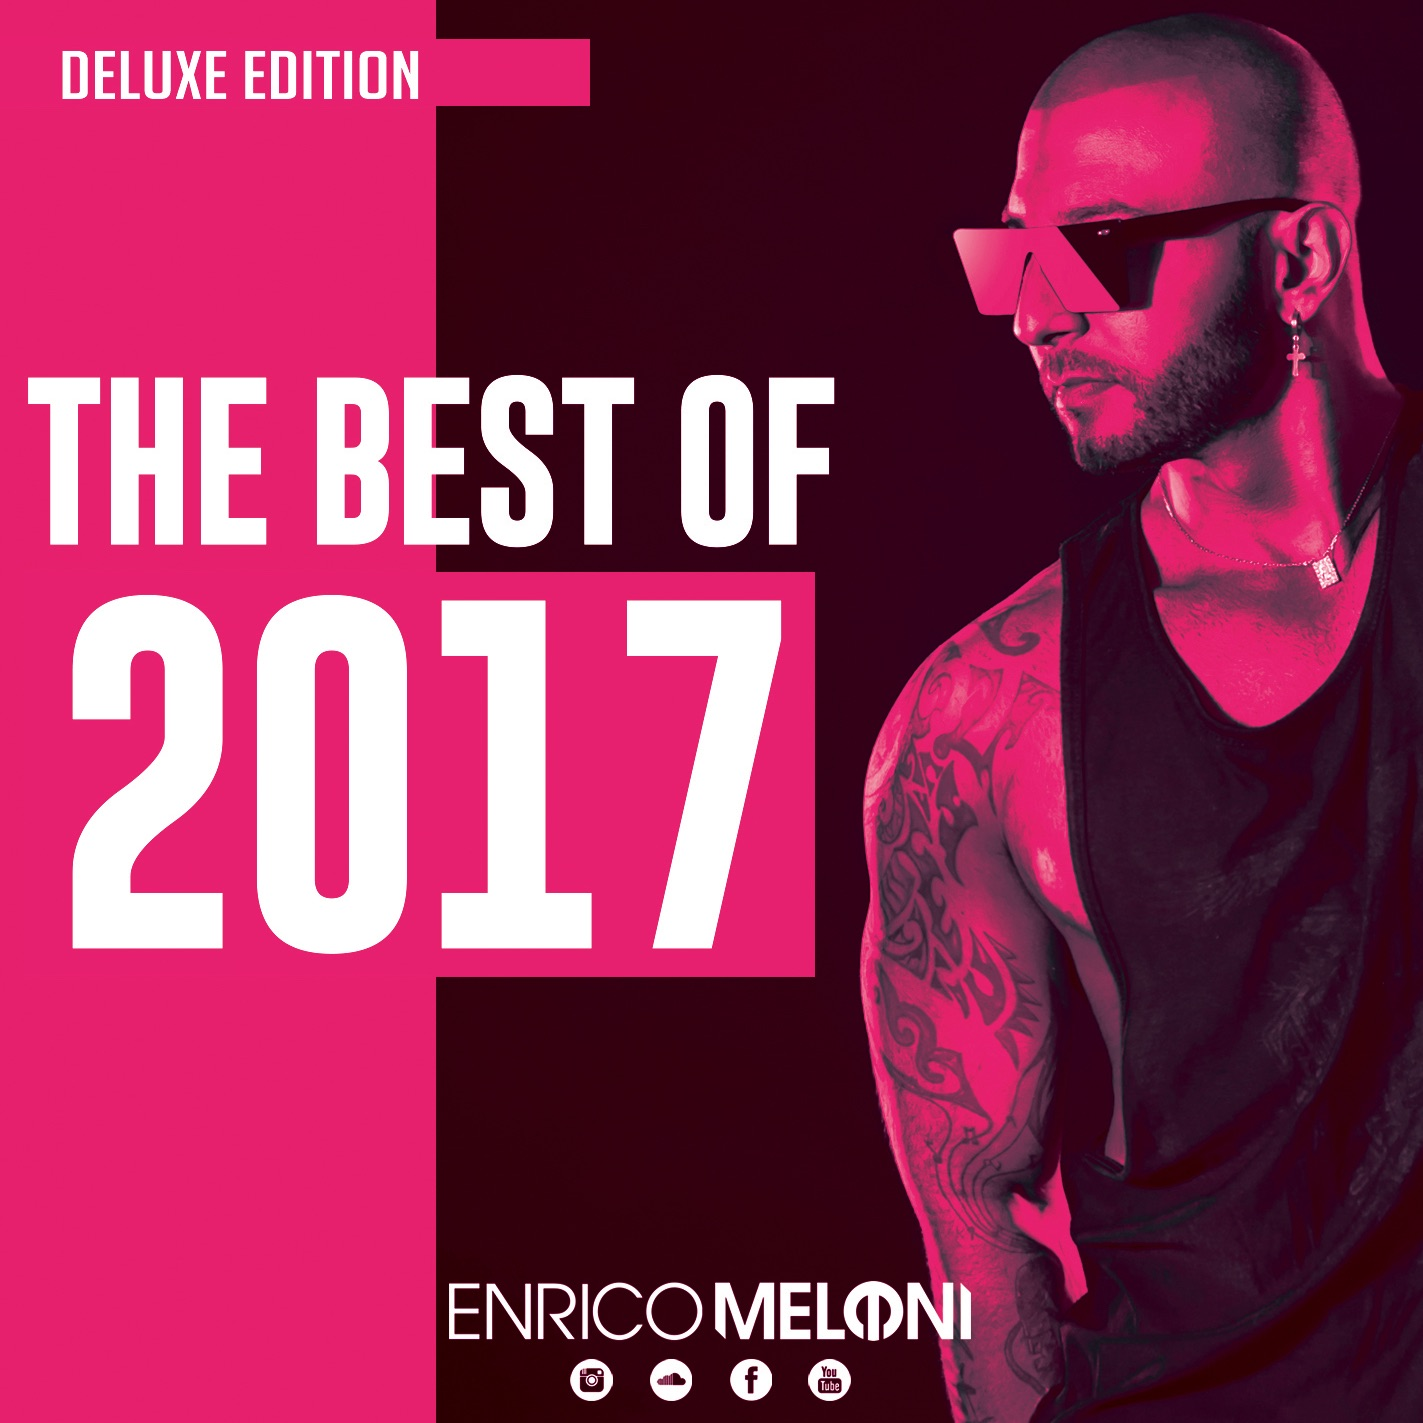 ENRICO MELONI - The Best Of 2017 (Deluxe Edition)